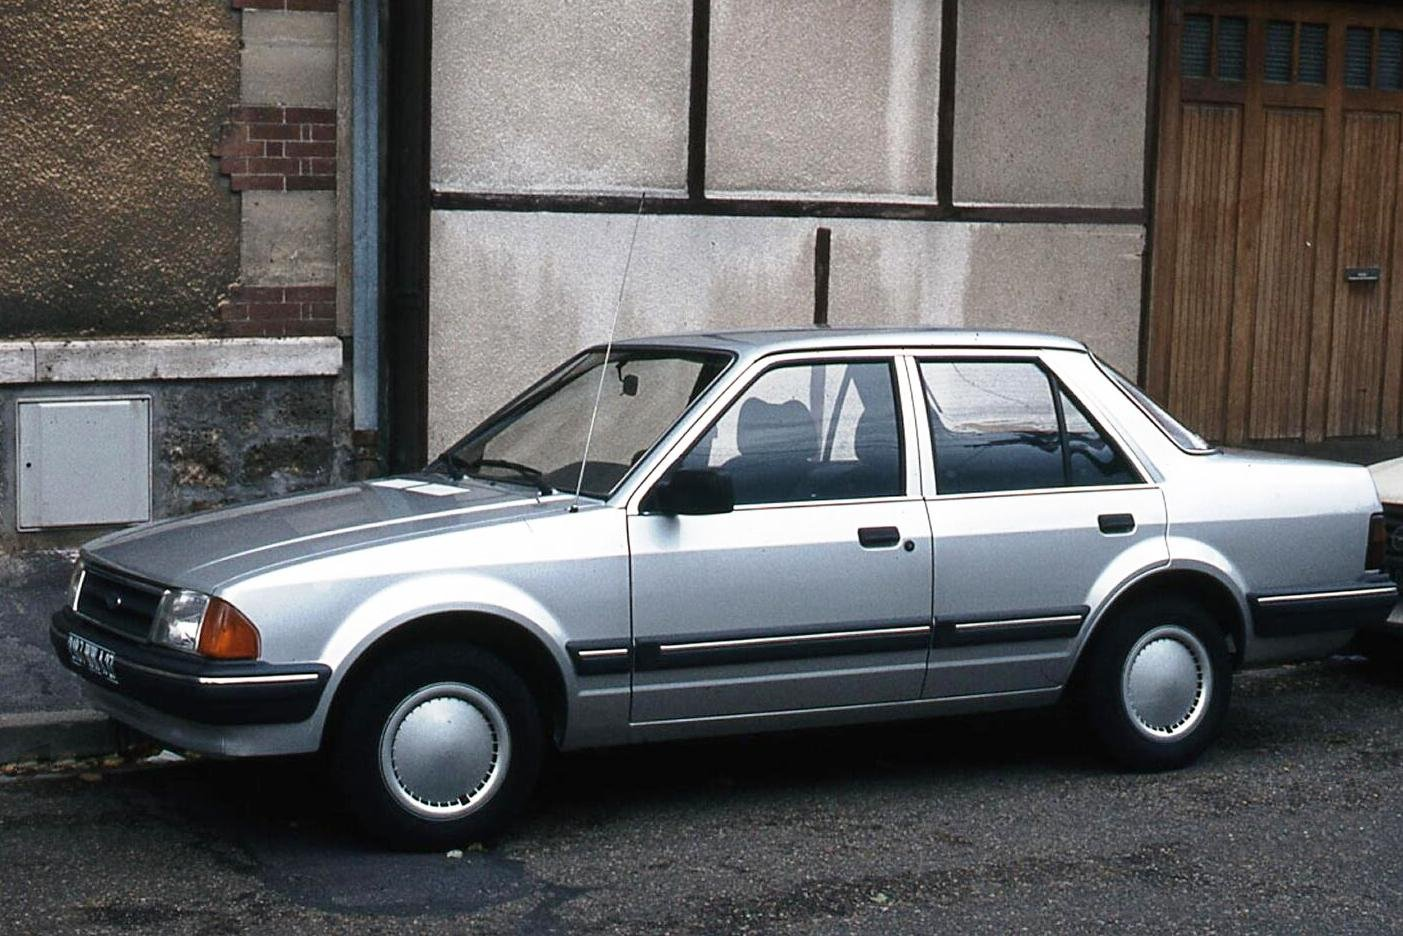 1985 Ford Orion #1